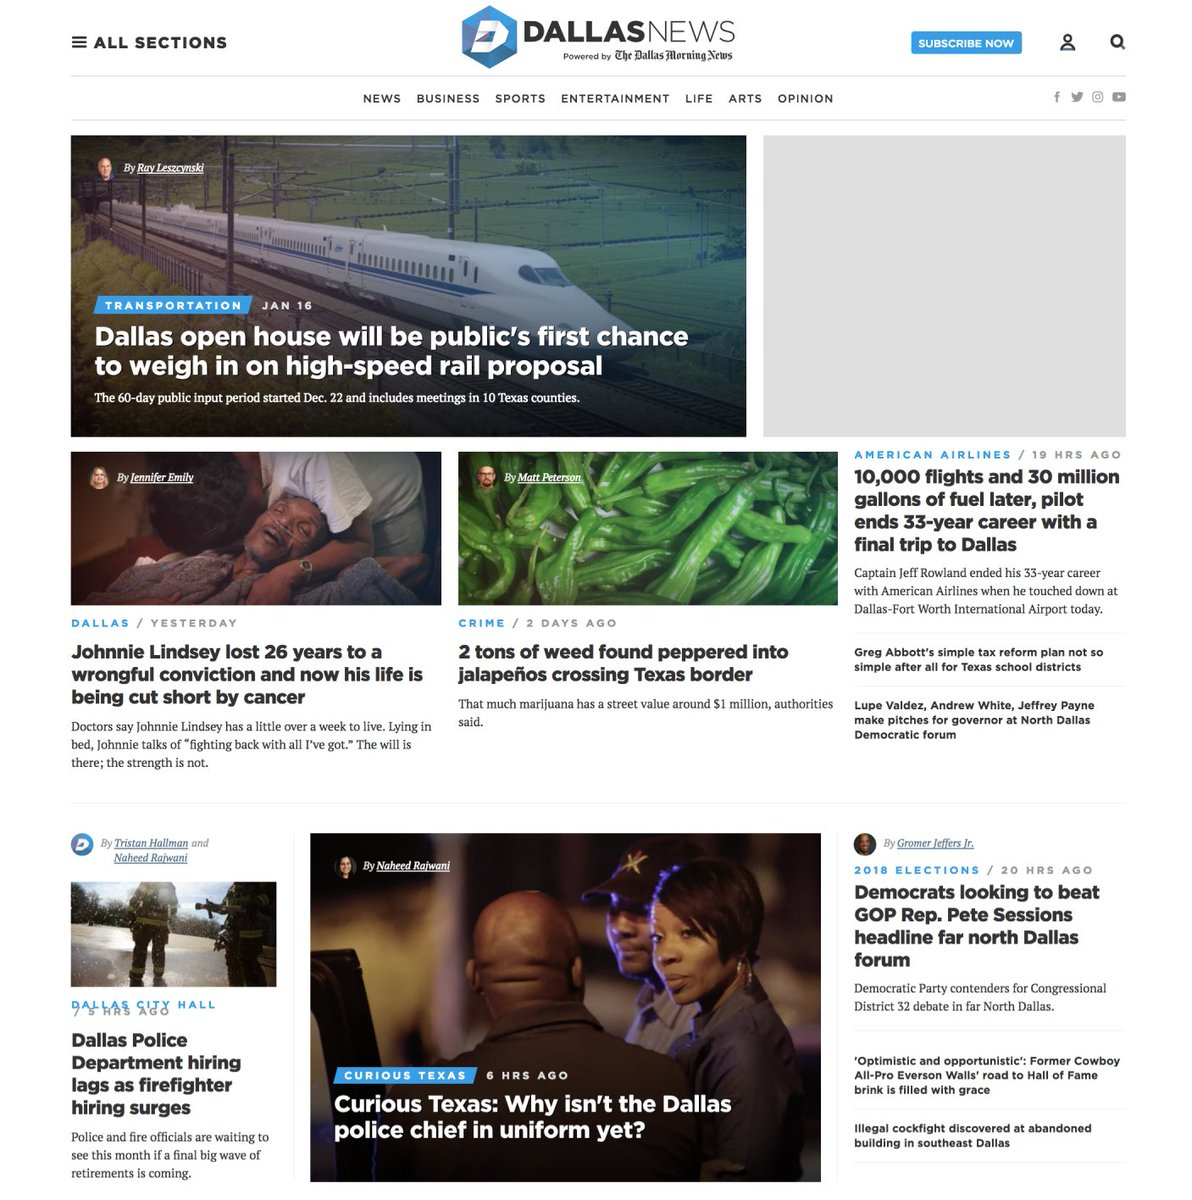 dallas morning news on twitter new year new home page what do yall think of the changes httpstcoy2bz50nd32